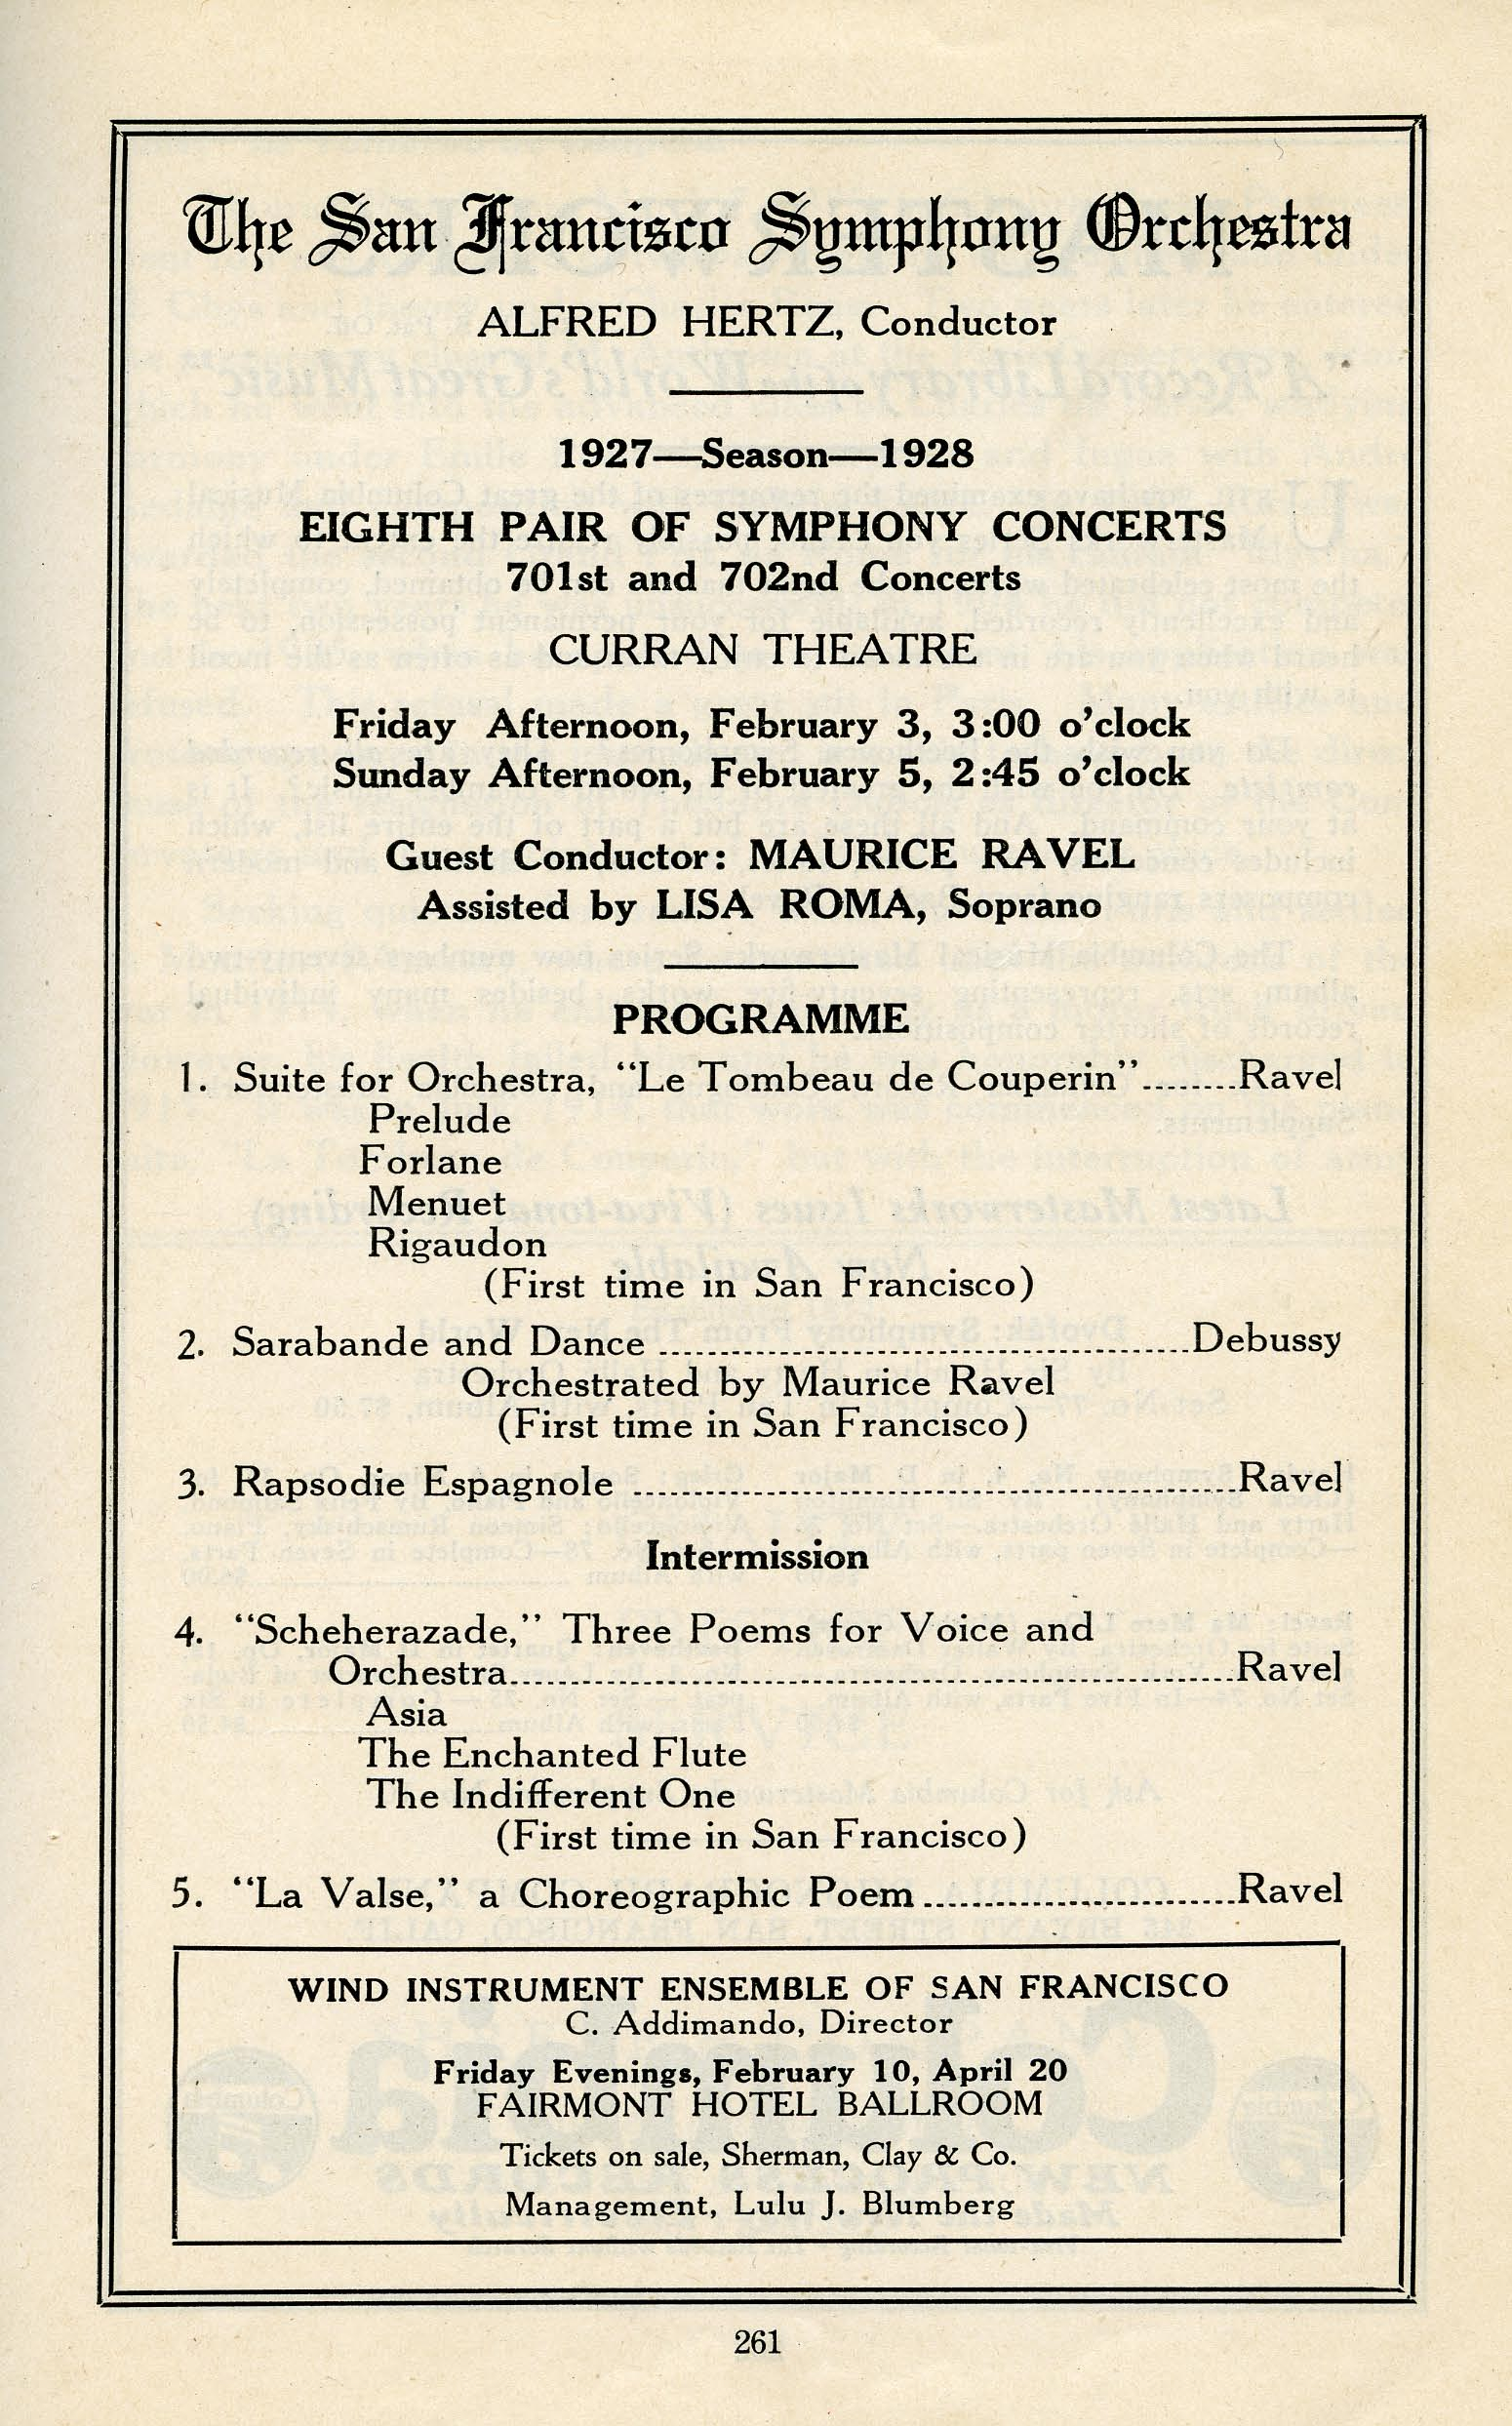 The Program from Eighth Pair of Symphony Concerts